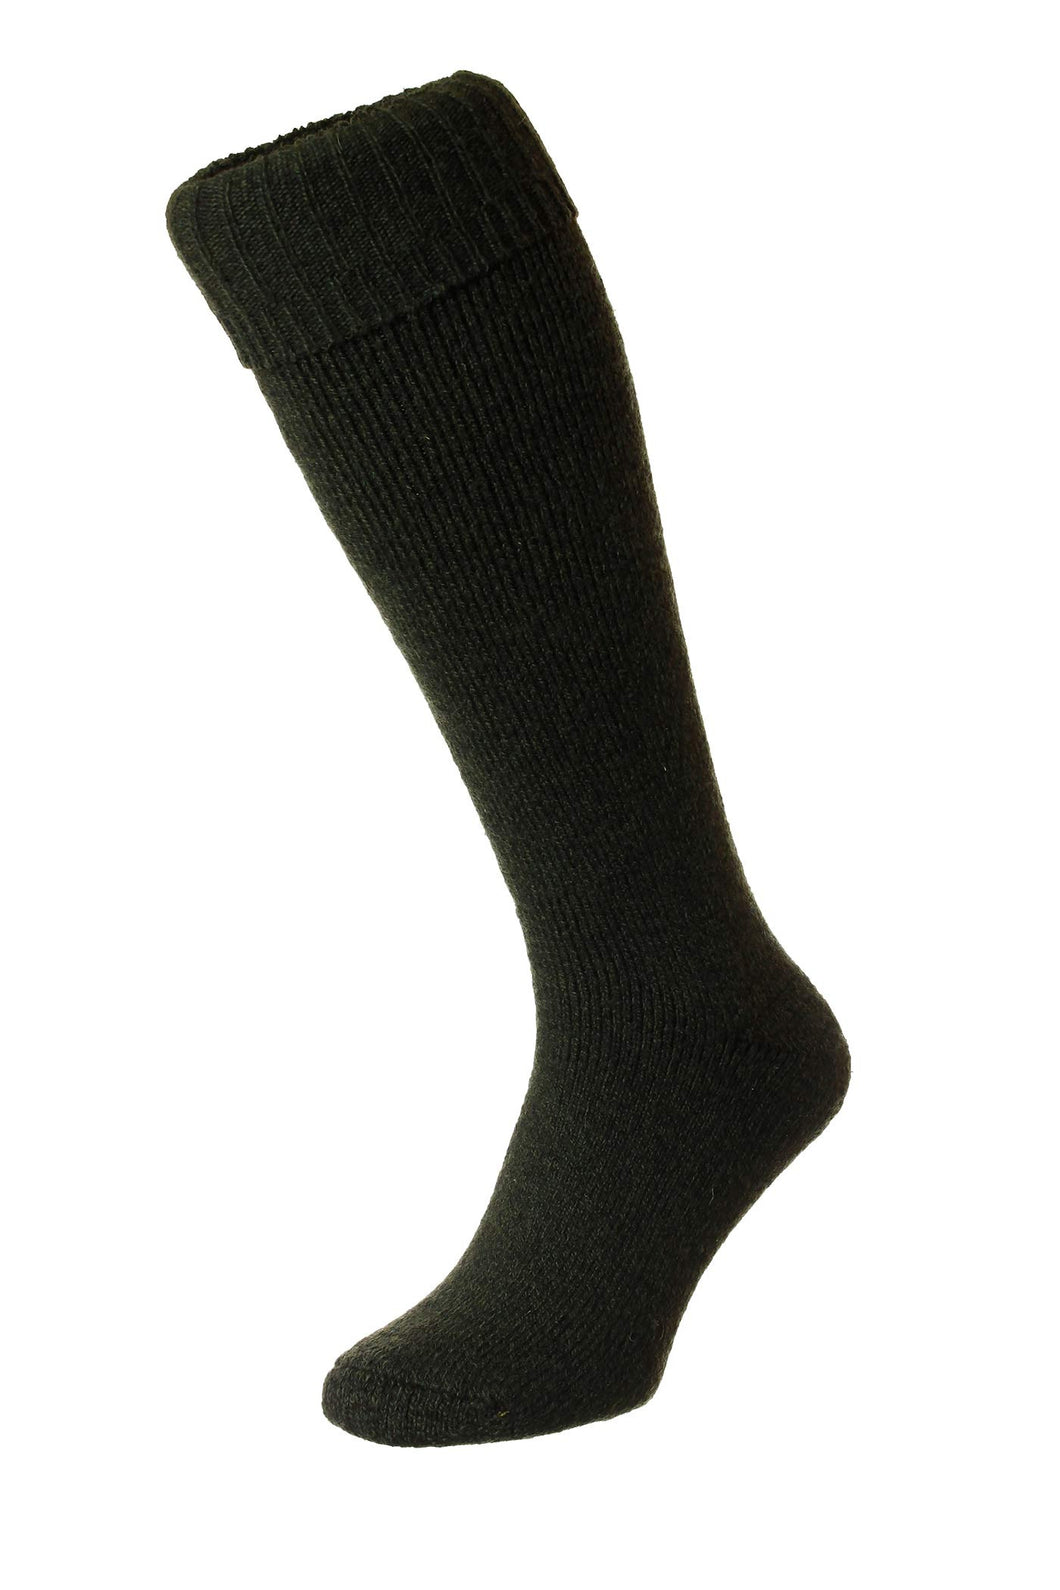 HJ608 Wellington Sock 6-11